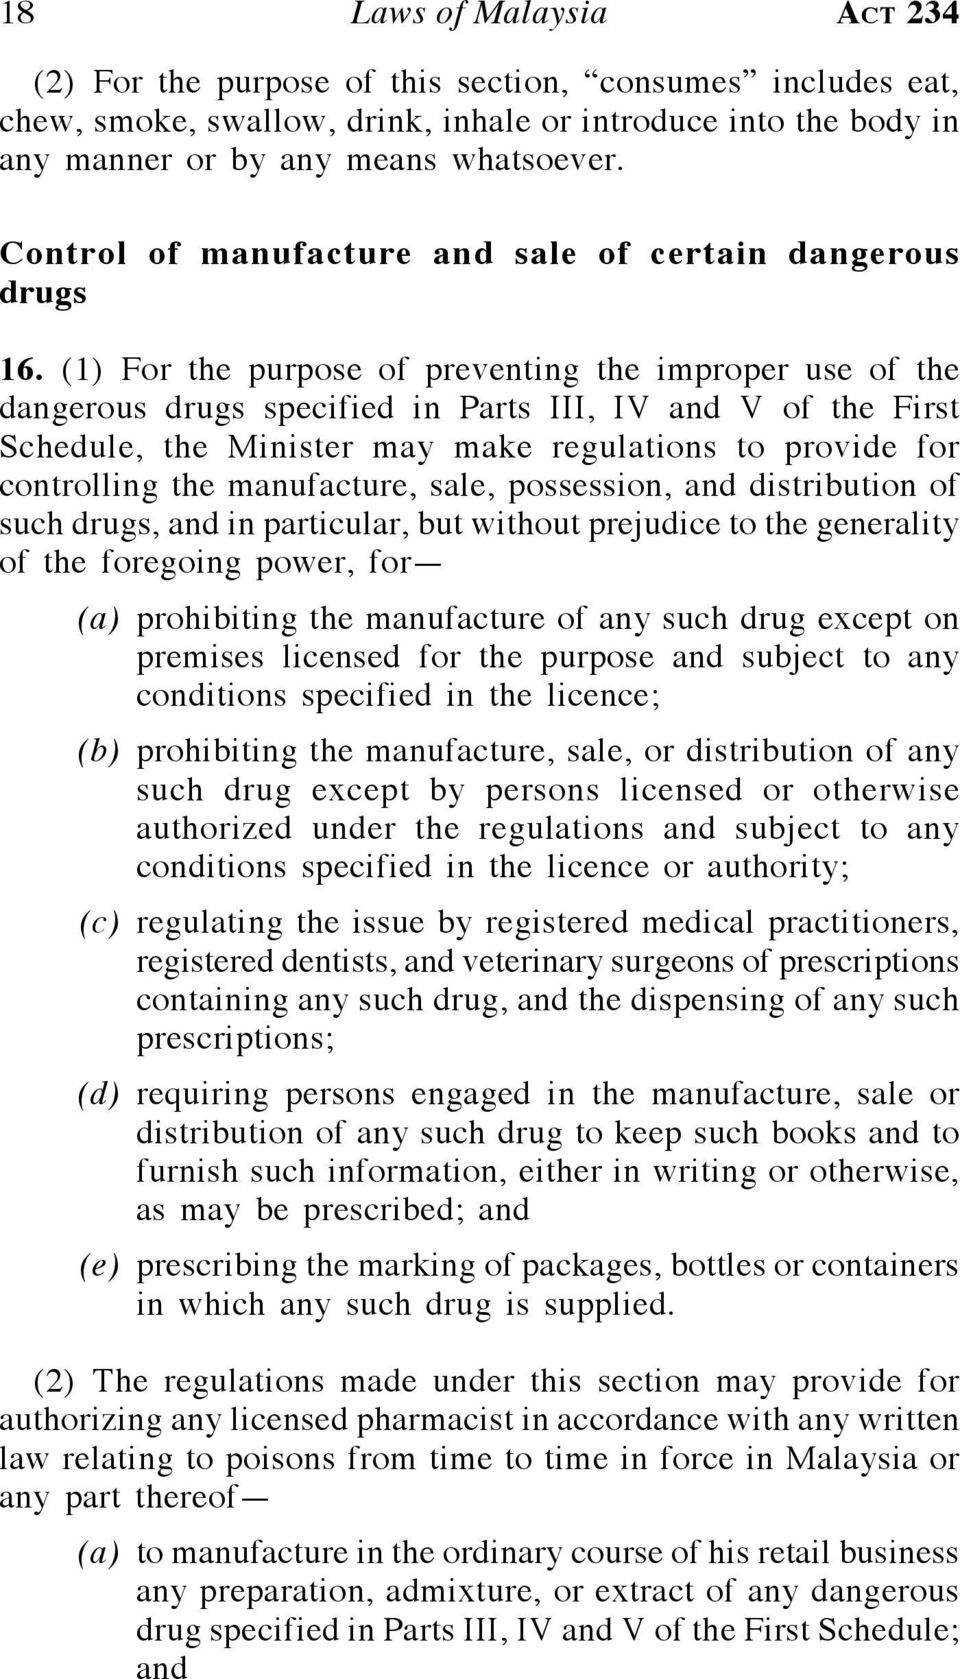 (1) For the purpose of preventing the improper use of the dangerous drugs specified in Parts III, IV and V of the First Schedule, the Minister may make regulations to provide for controlling the